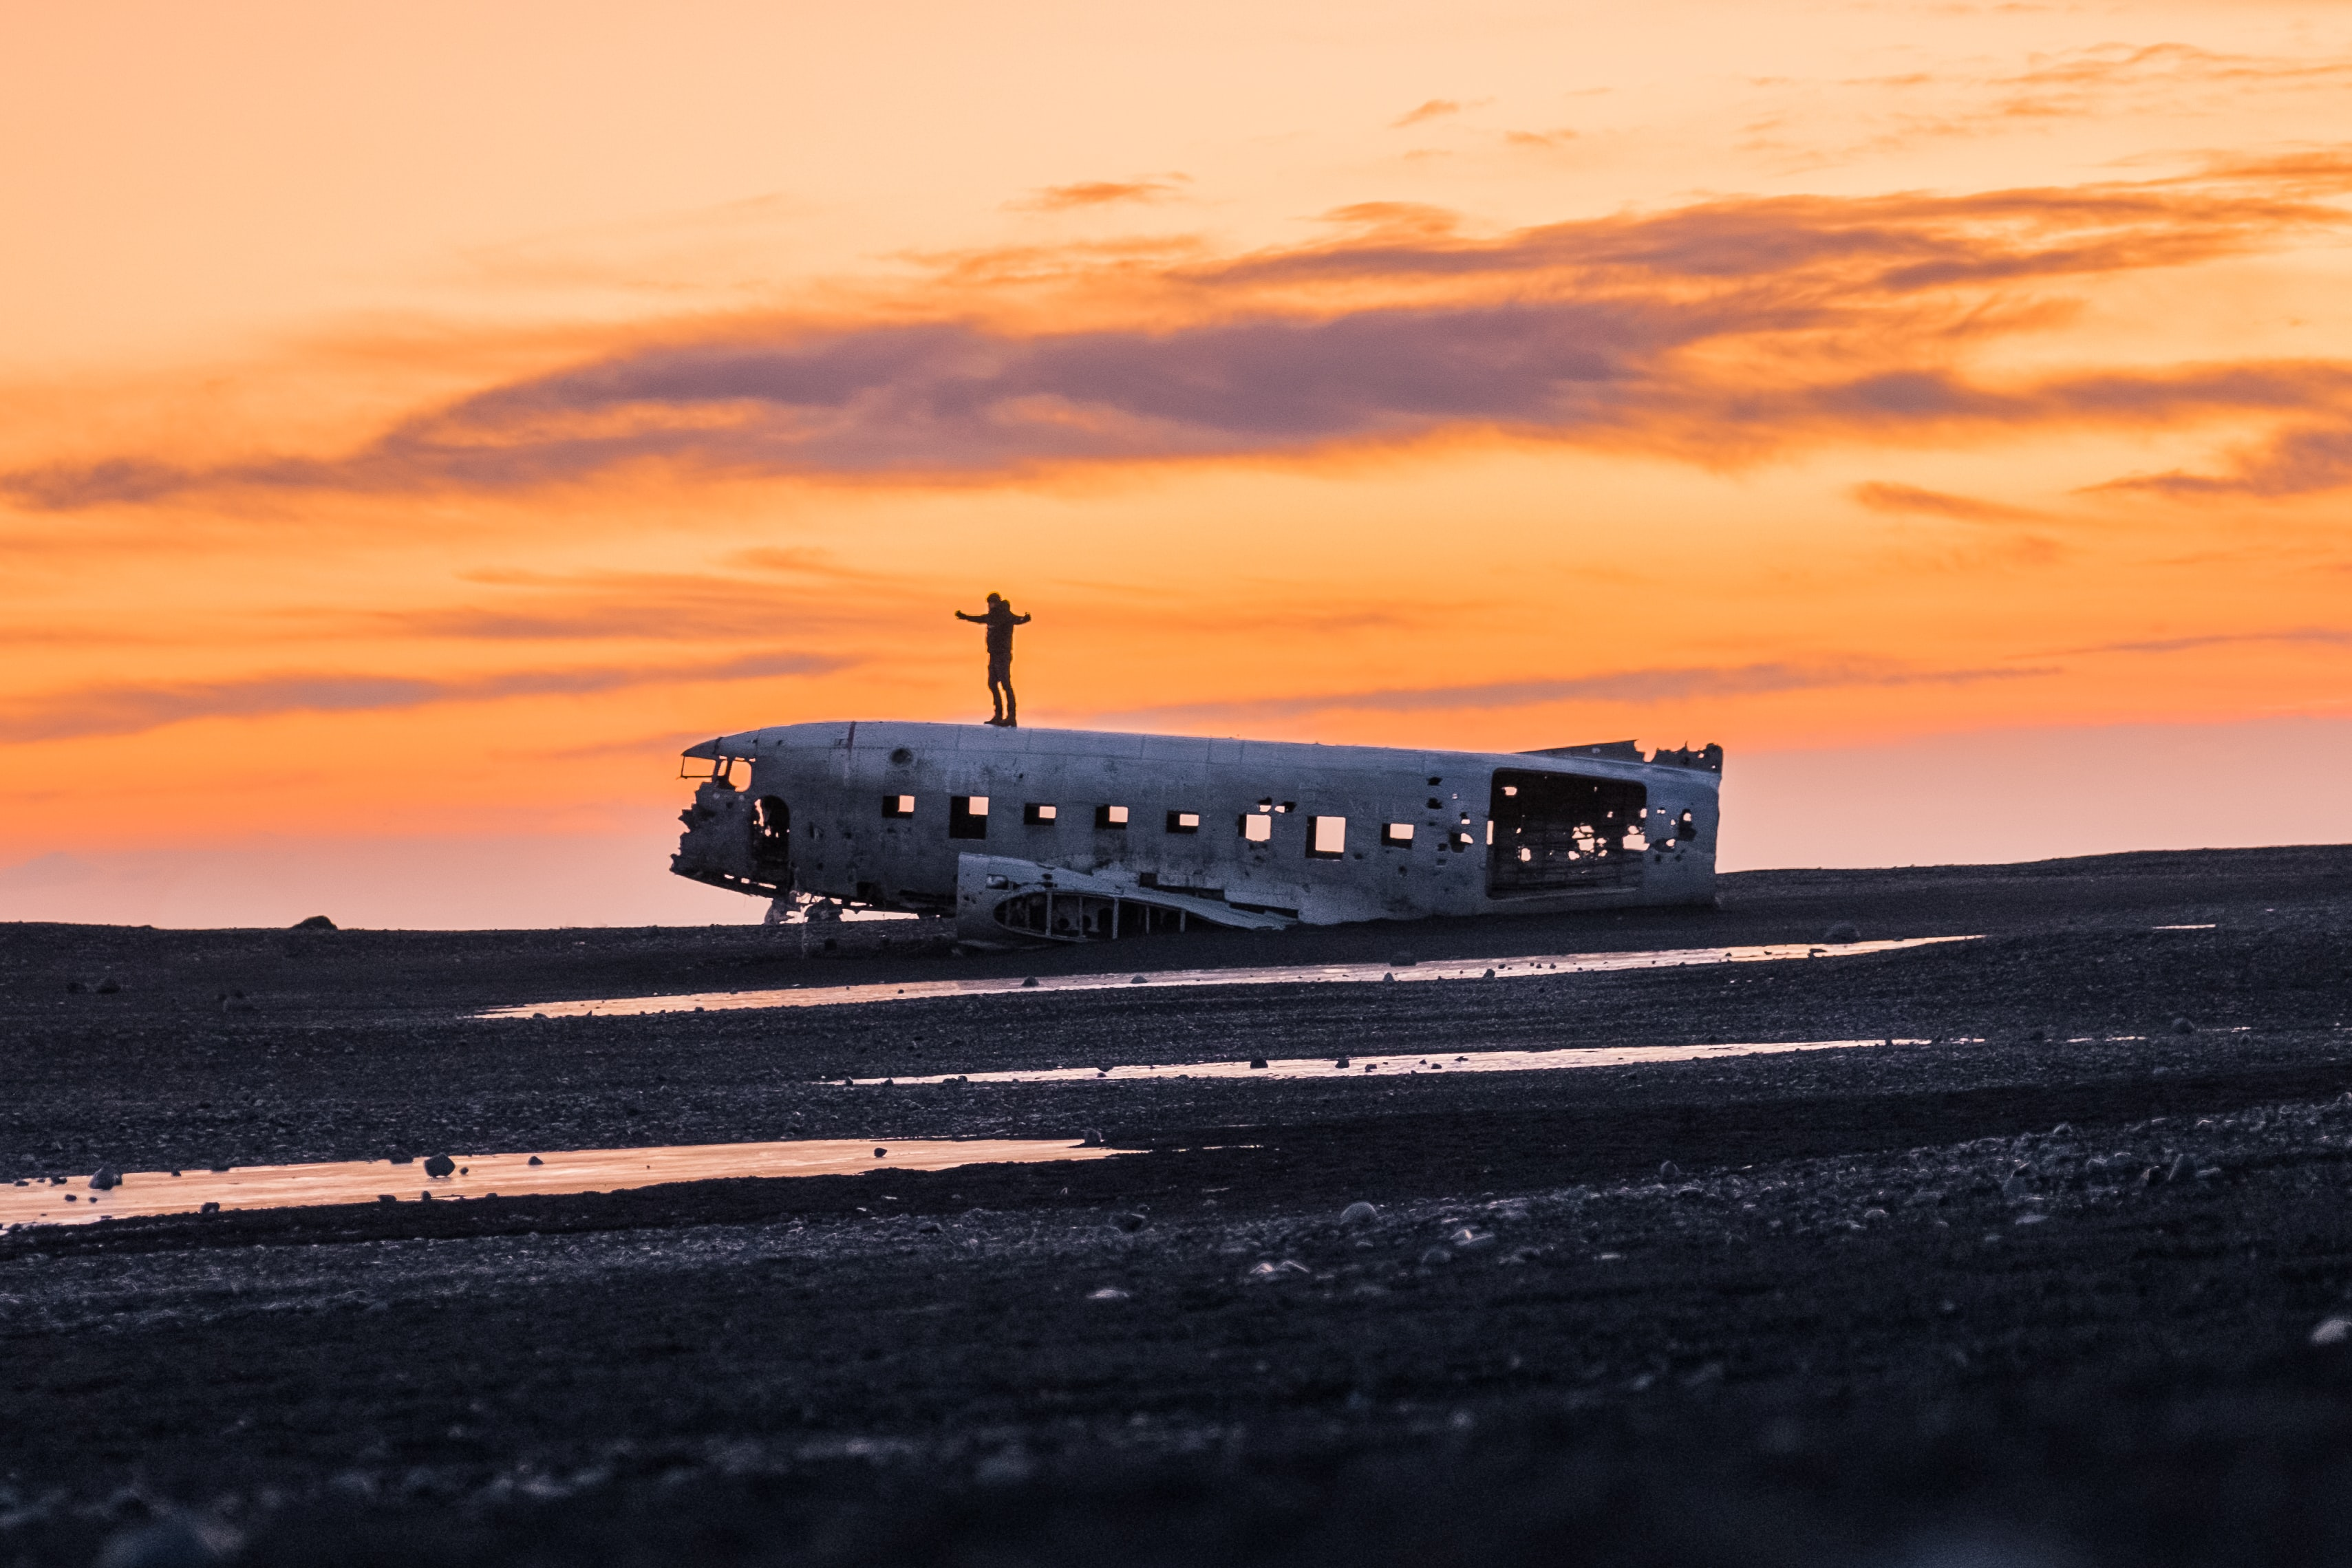 wrecked airplane on ground under clouds during golden hour